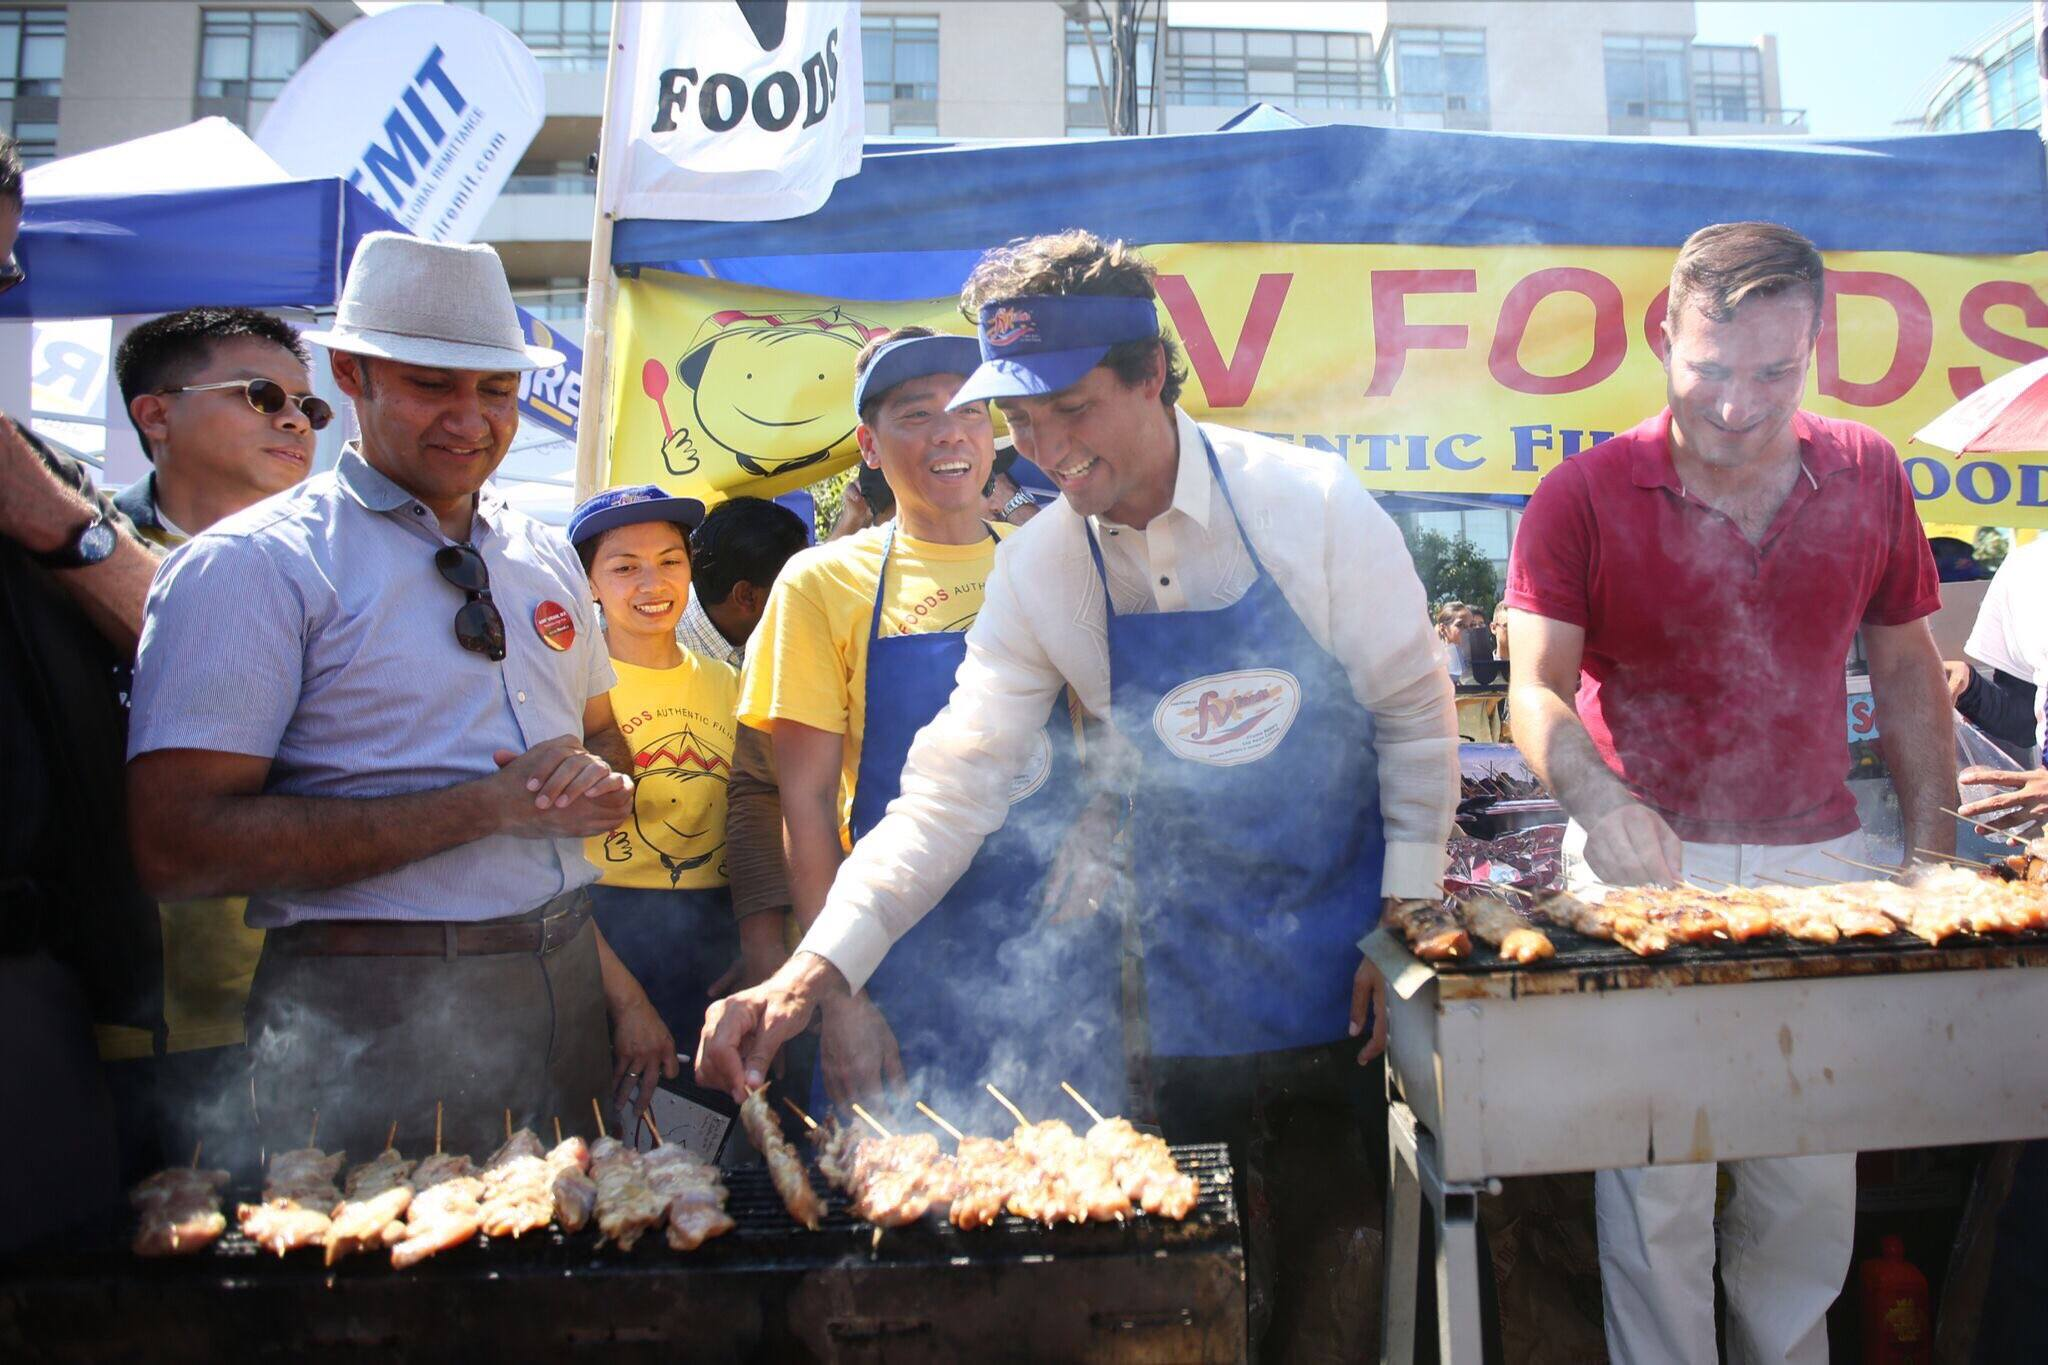 PINOY BARBECUE. Canadian Prime Minister Justin Trudeau (2nd from right) helps in grilling barbecue at the Taste of Manila event in Toronto, Canada, August 20, 2016. Photo courtesy Trudeau's official page on Facebook